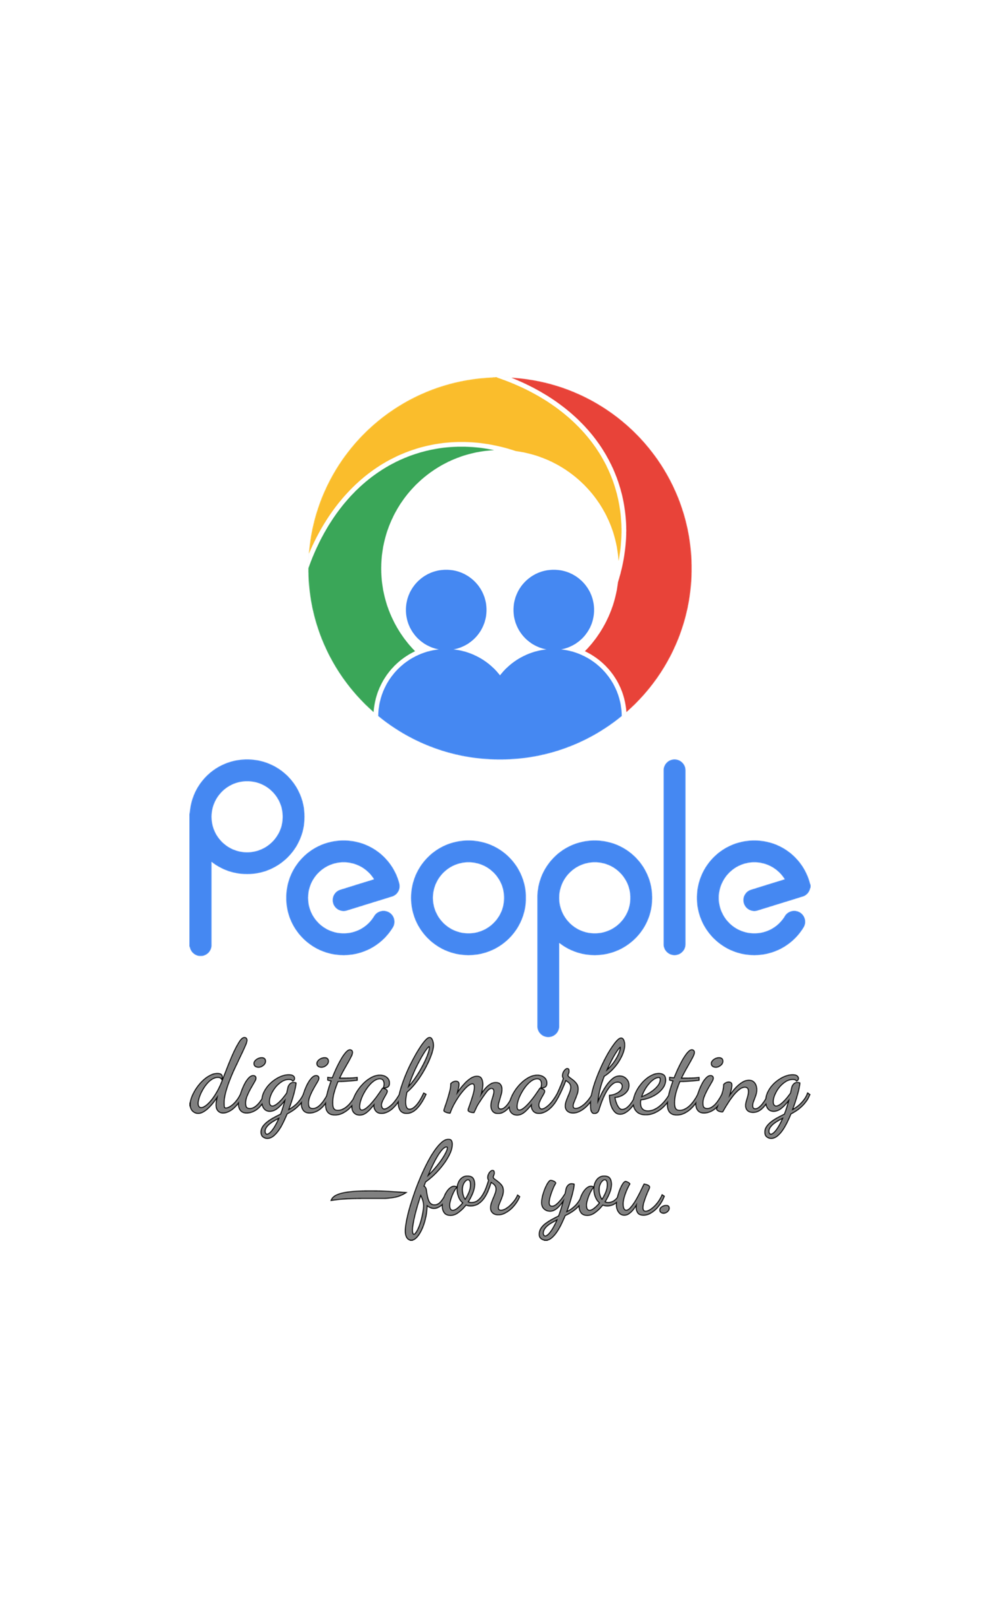 people_dm_digitalmarketing_digital_marketing_adwords_ads_online_social_socialmedia 1618.png